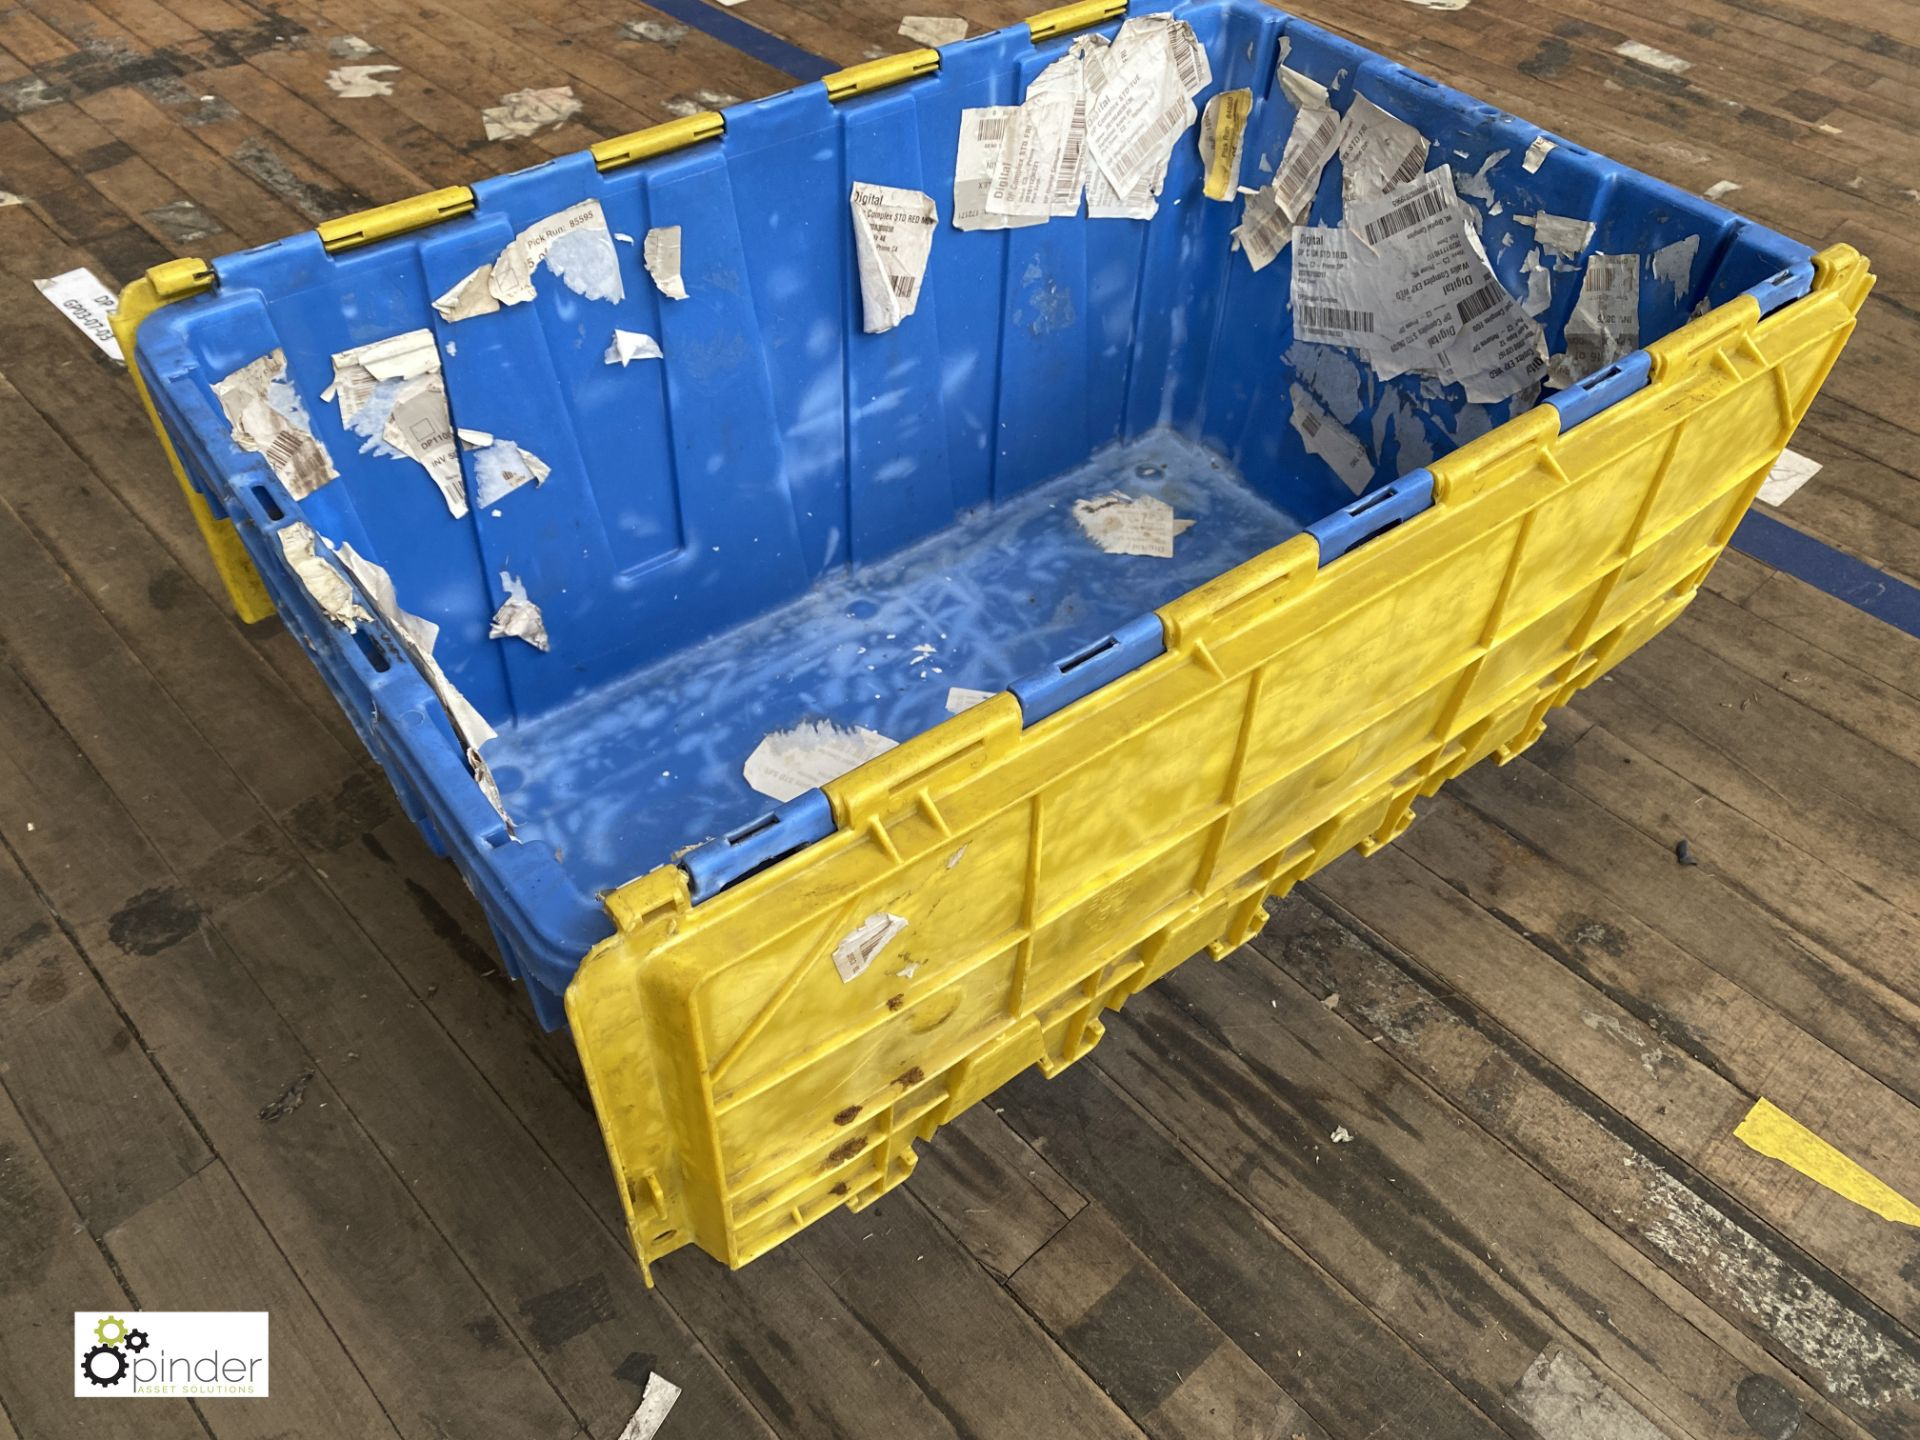 Approx. 54 Buckhorn stackable plastic Storage Containers, 640mm x 380mm x 300mm, with interlocking - Image 2 of 4